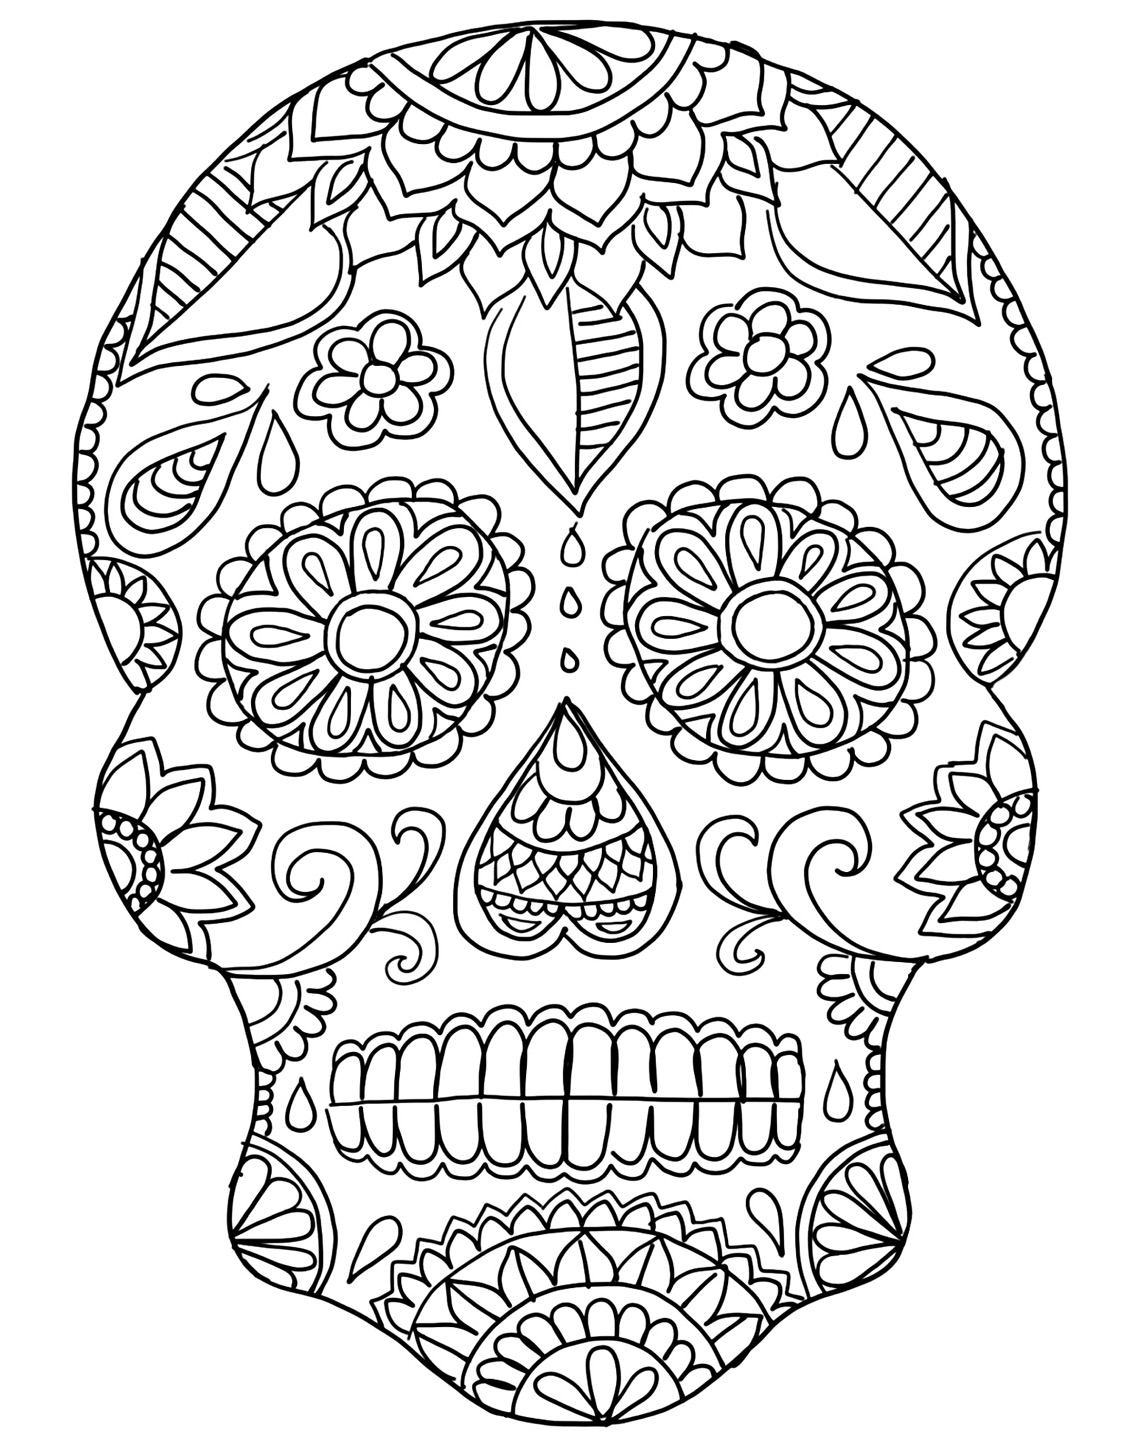 Diy Sugar Skull Crafts For Dia De Los Muertos